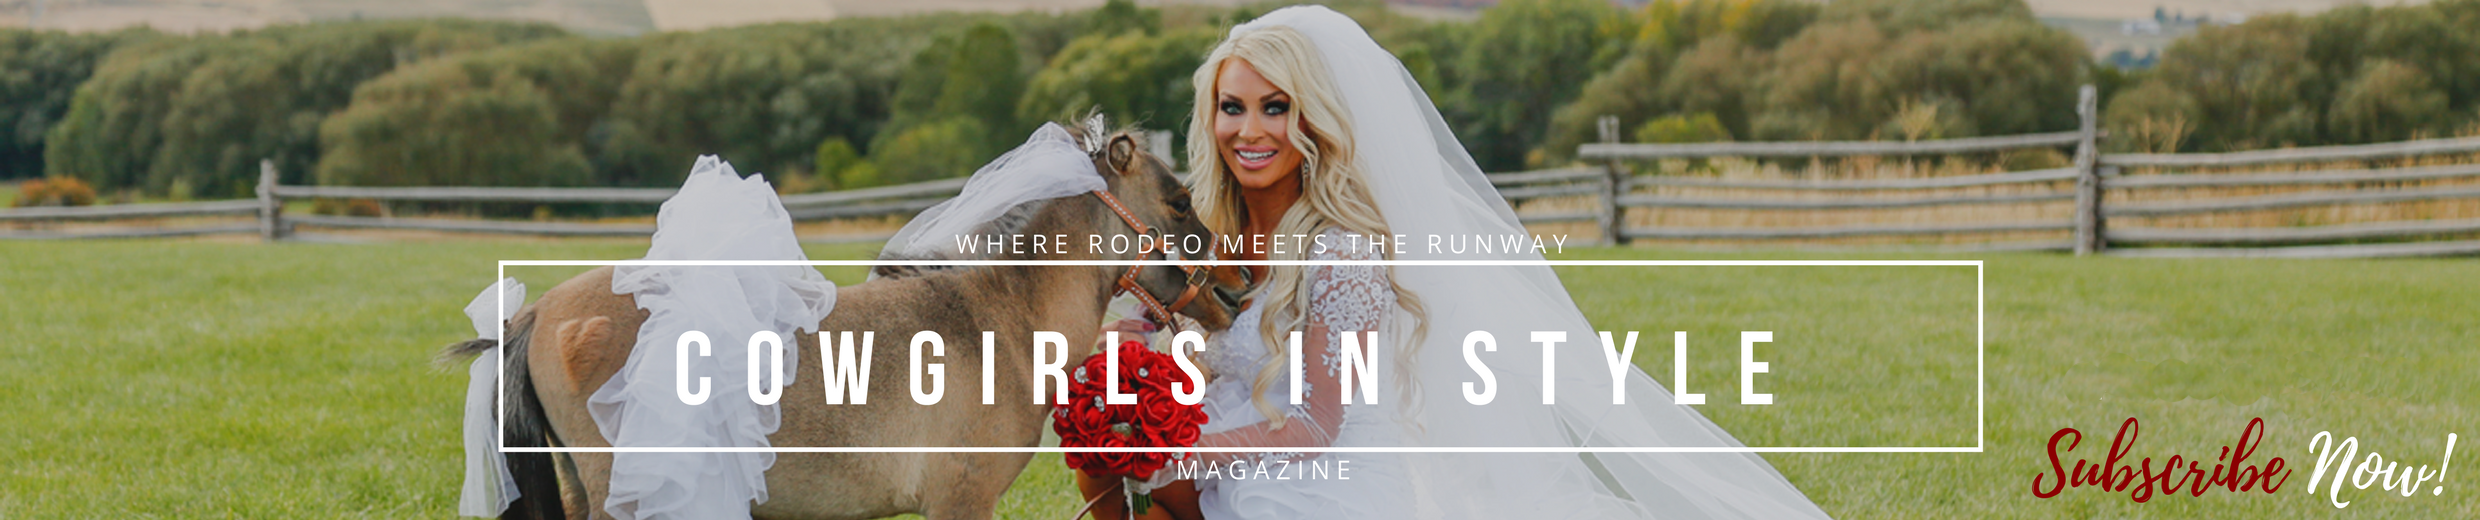 July 2019 - Cowgirls In Style Magazine